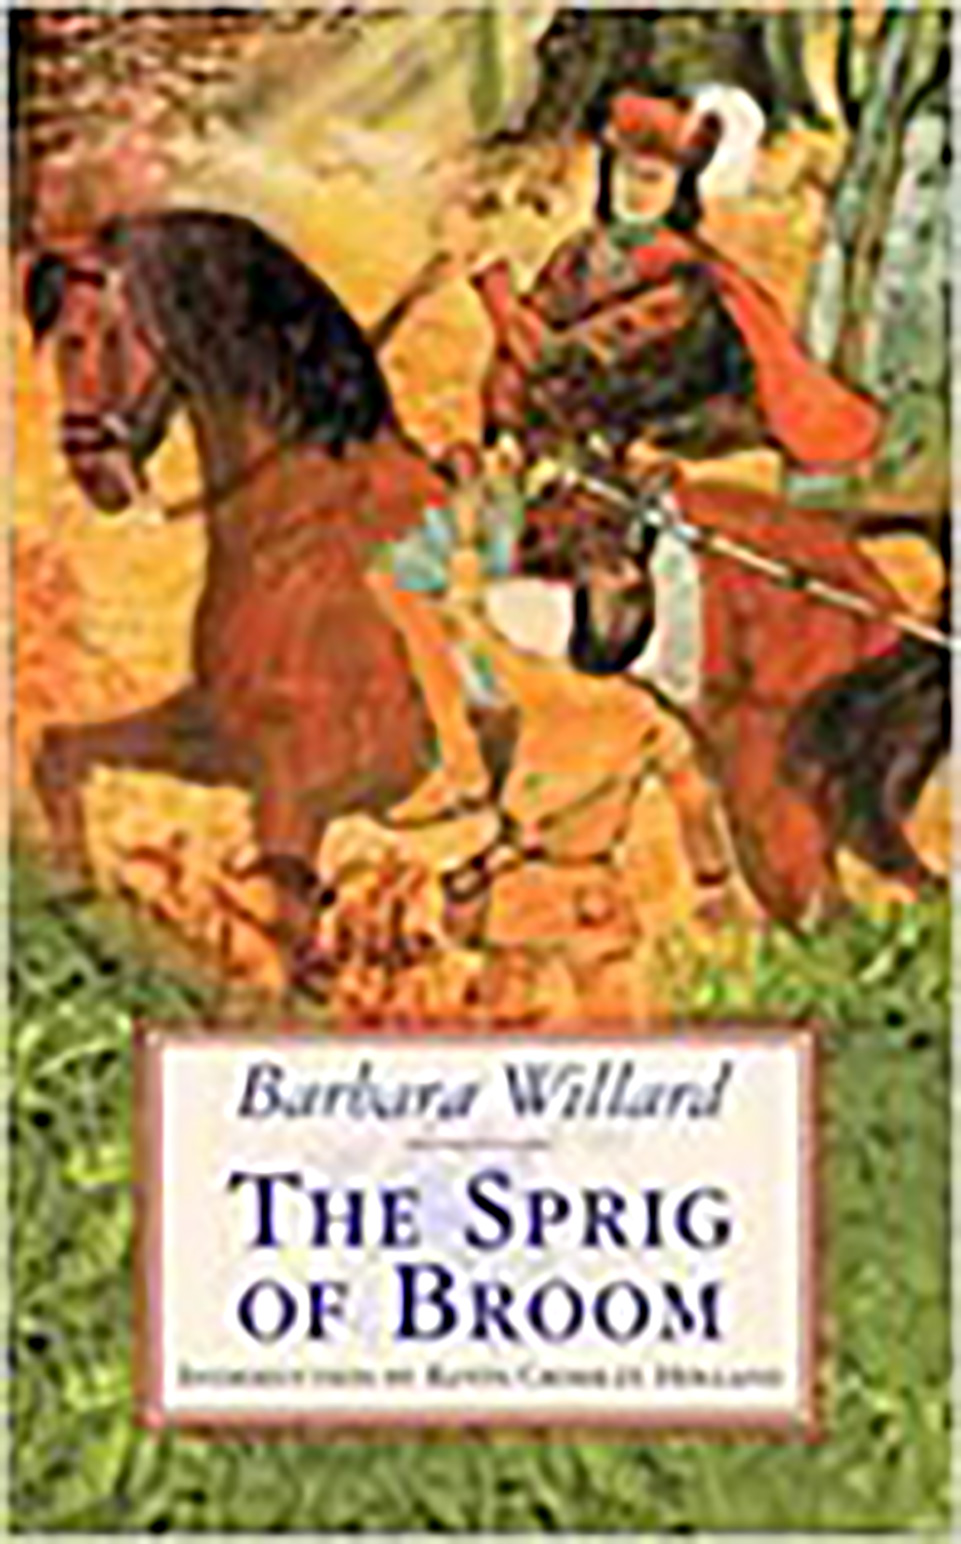 front cover of a book: The Sprig of Bloom by Barbara Willard